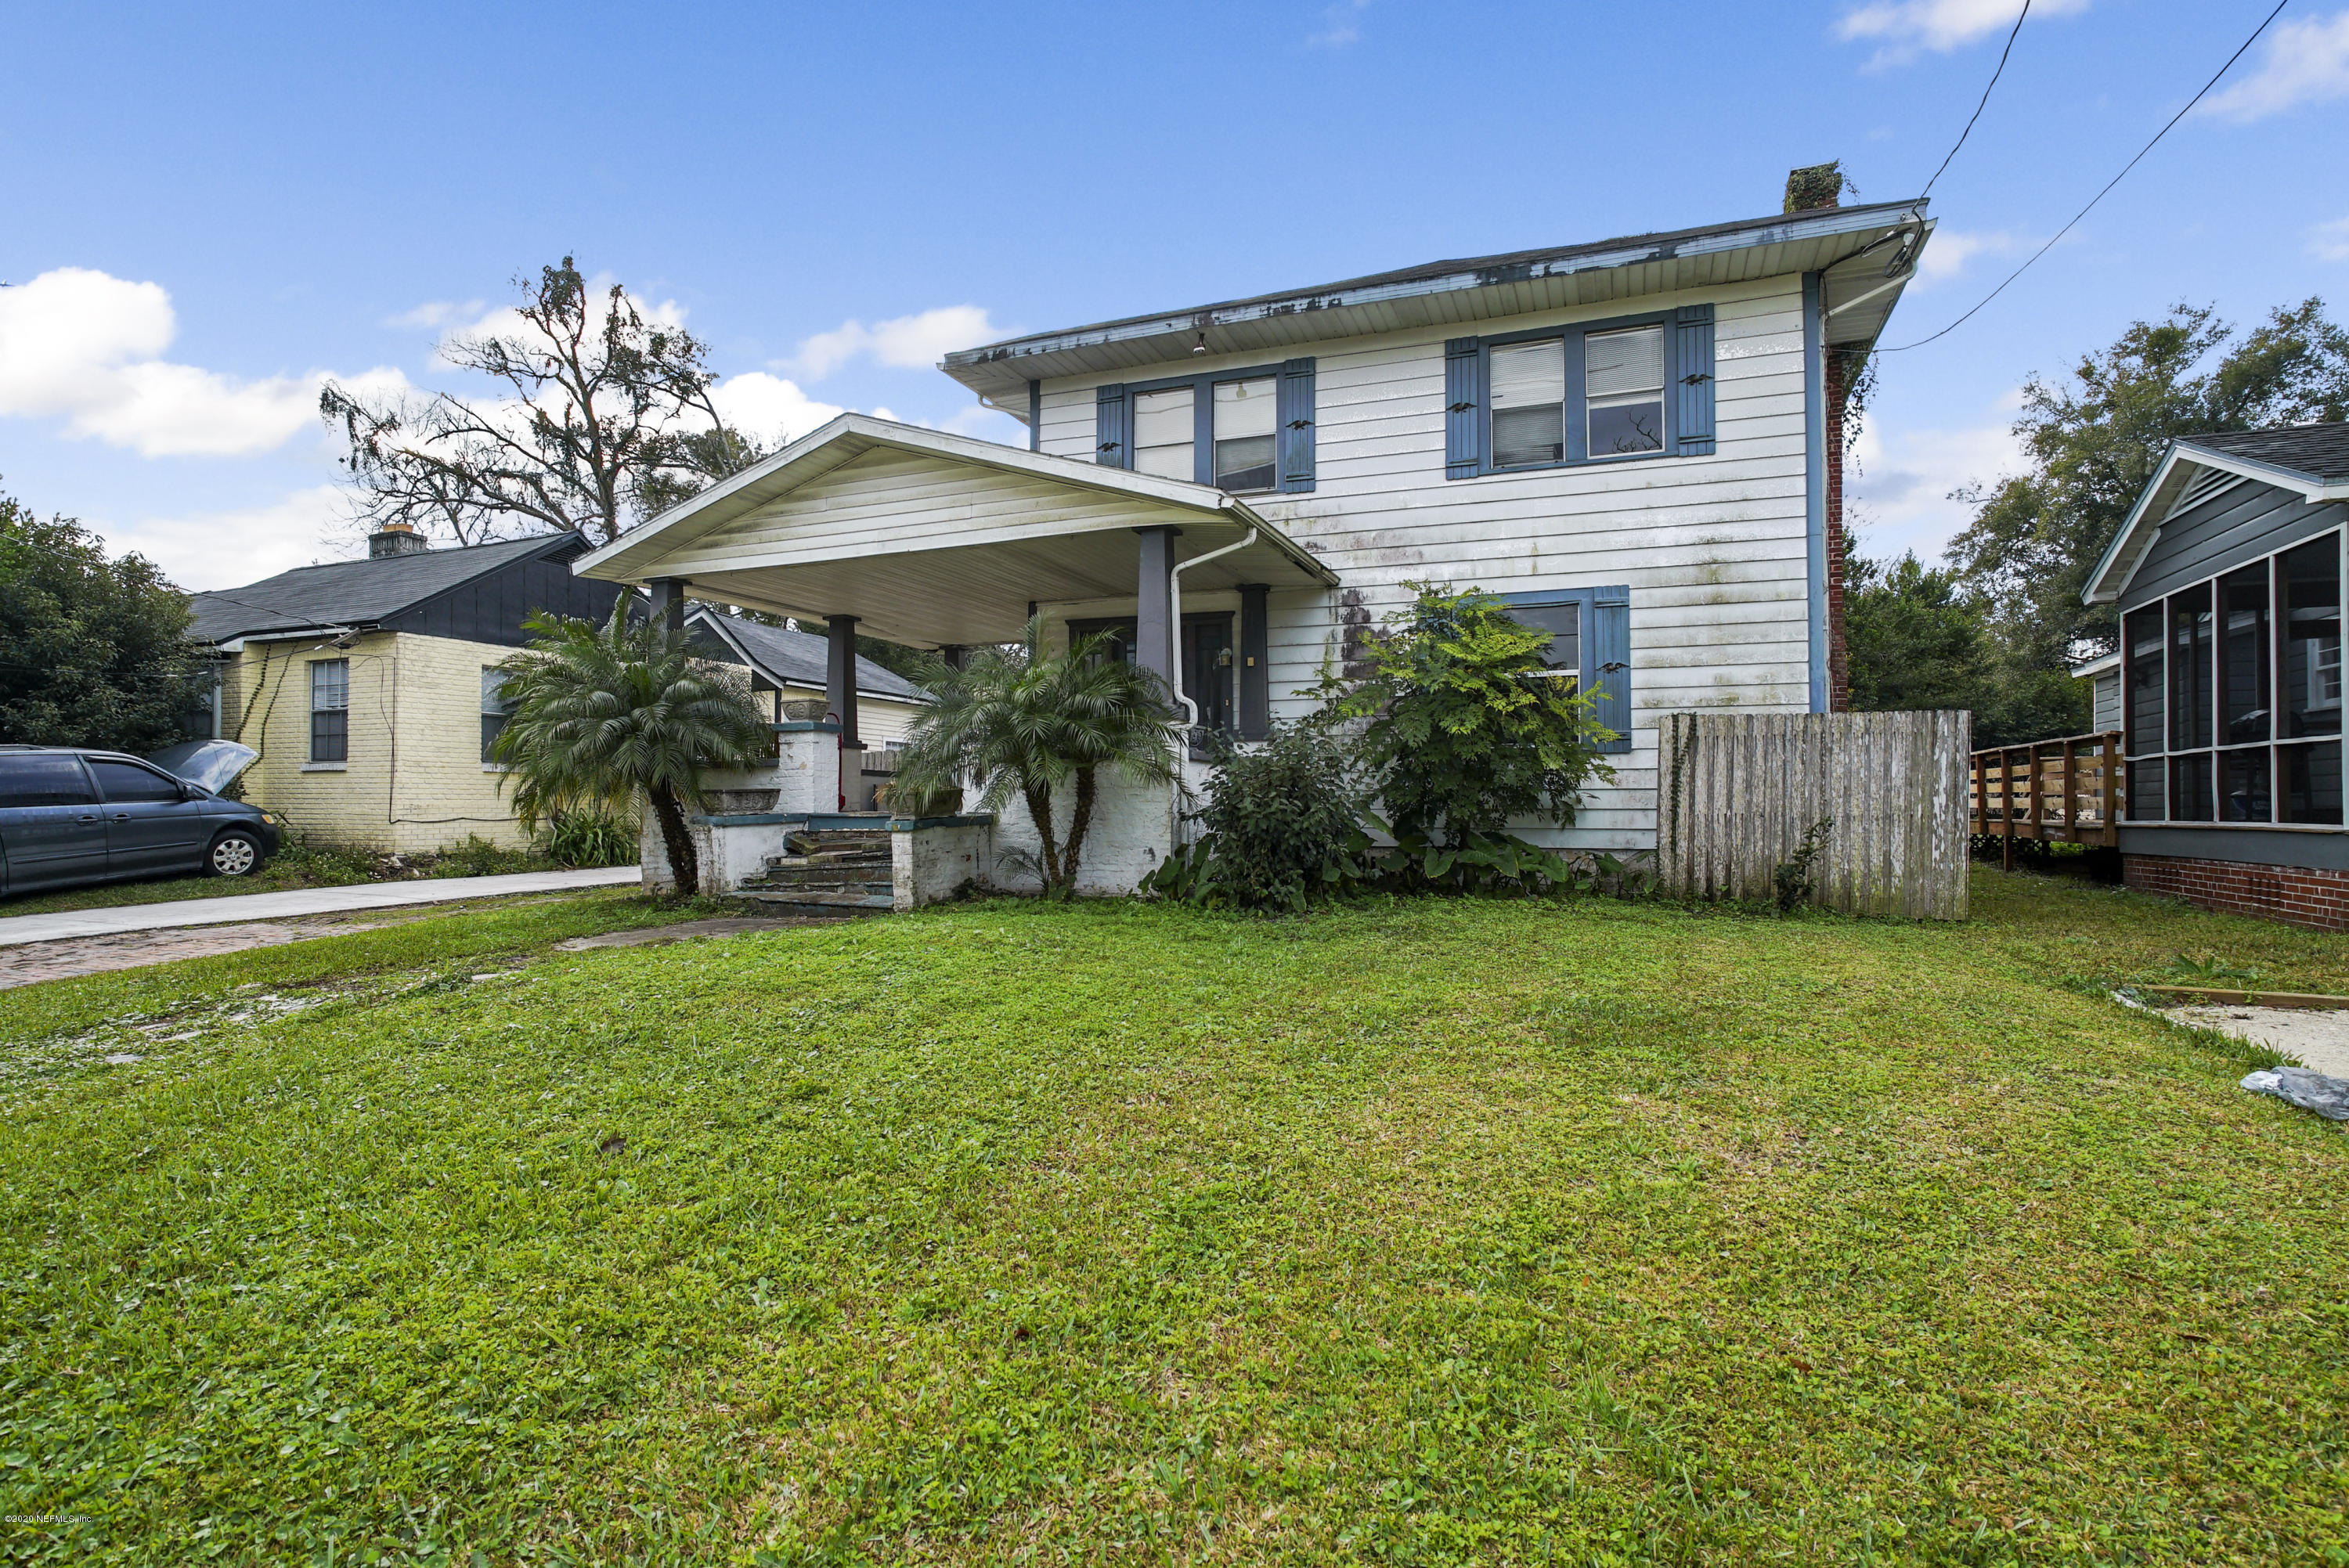 5316 COLONIAL, JACKSONVILLE, FLORIDA 32210, 4 Bedrooms Bedrooms, ,1 BathroomBathrooms,Investment / MultiFamily,For sale,COLONIAL,1035947